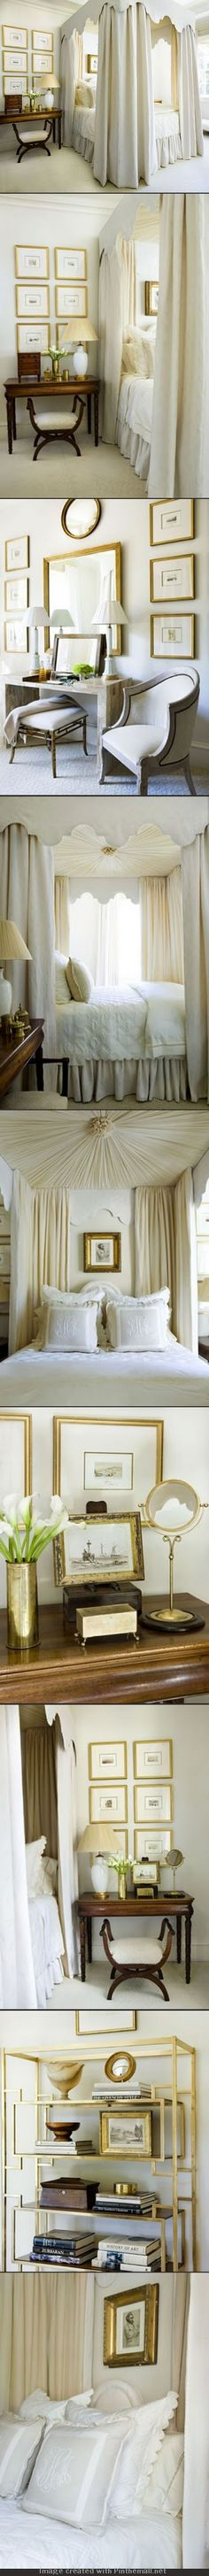 Phoebe Howard. Atlanta showhouse. Layers of ivory and cream, Embroidered sheets n duvet cover, quilted cotton sateen coverlet n shams, monogrammed pillows; ranging from white linen to champagne-colored embroidery inspired color scheme. Faux shagreen wallpaper, pale-beige upholstery. For balance, more masculine furniture. Embroidered linen for outer bed curtains, sheer silk w/ tiny scalloped trim for inner.